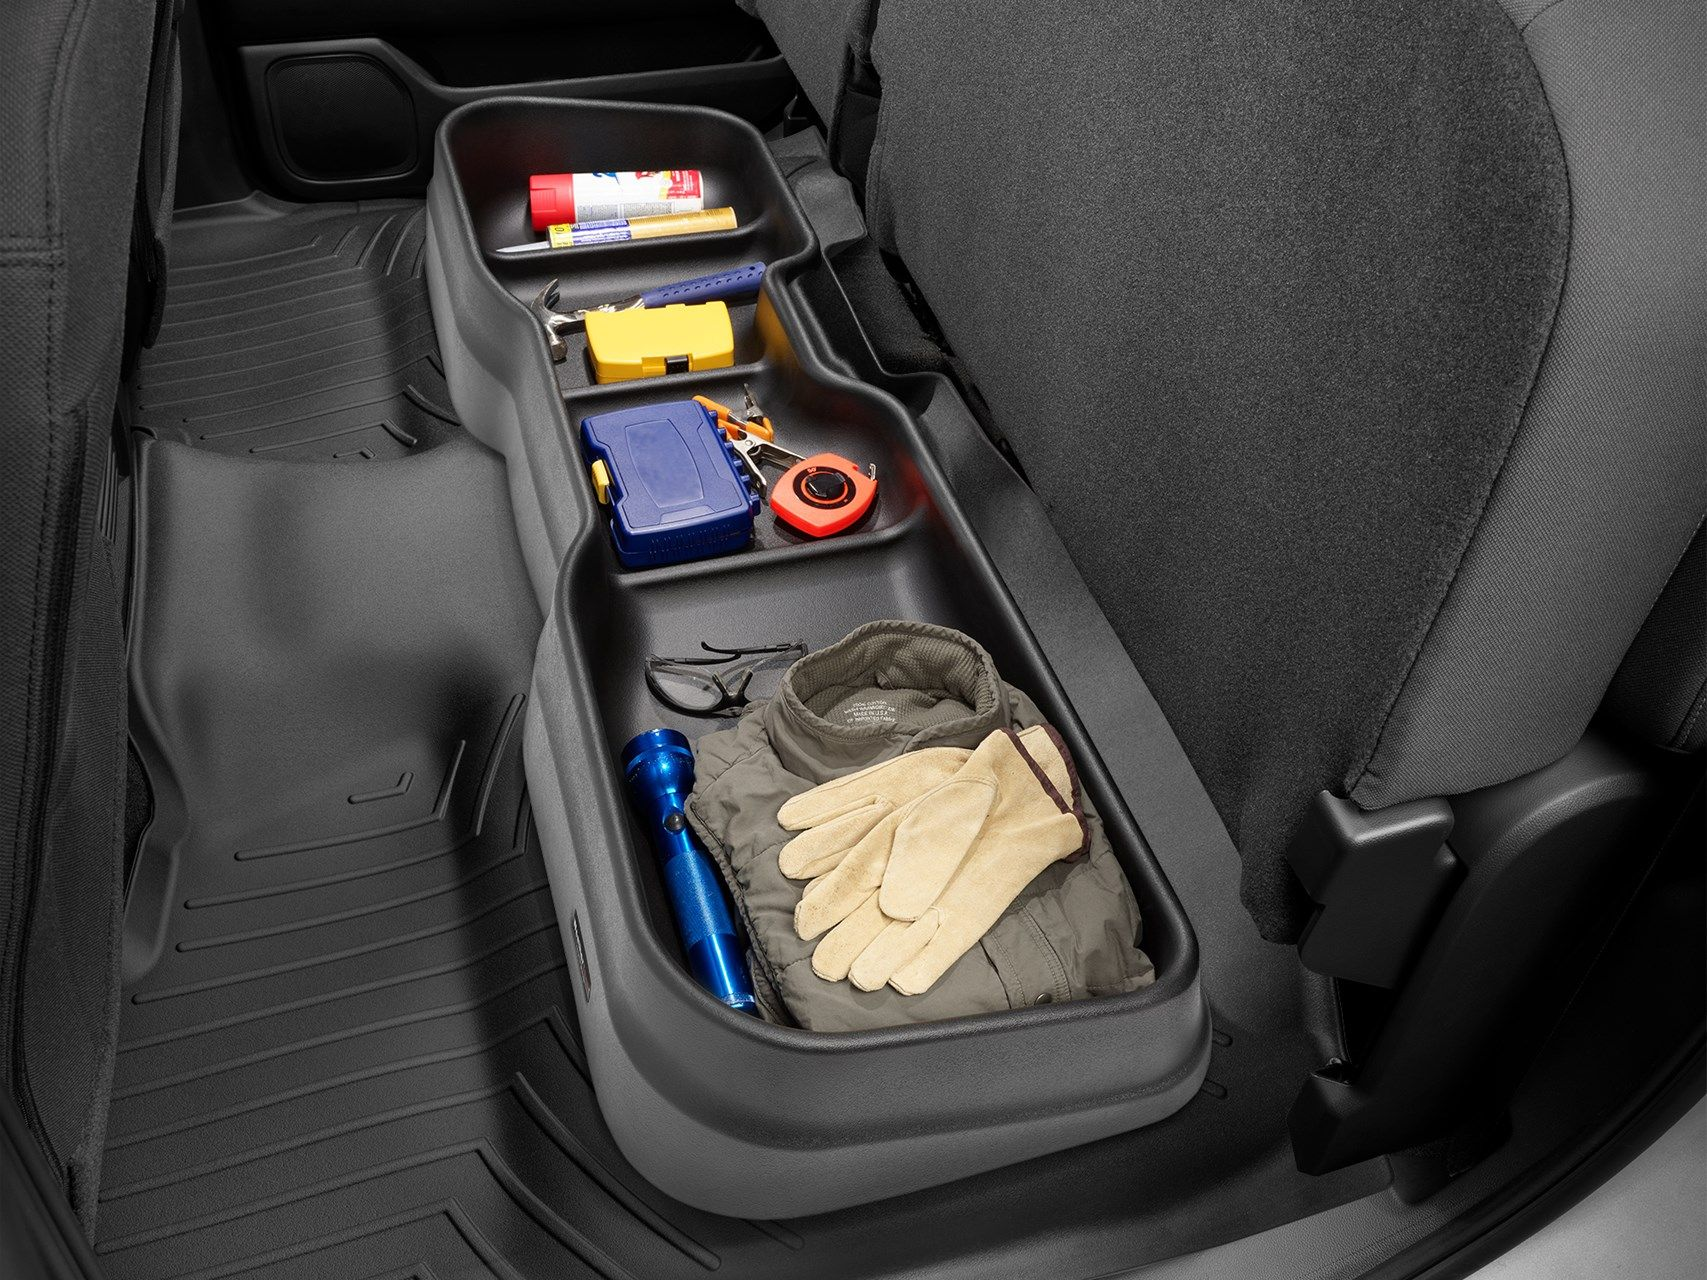 Chevrolet 2011 Silverado 1500 Under Seat Storage System in